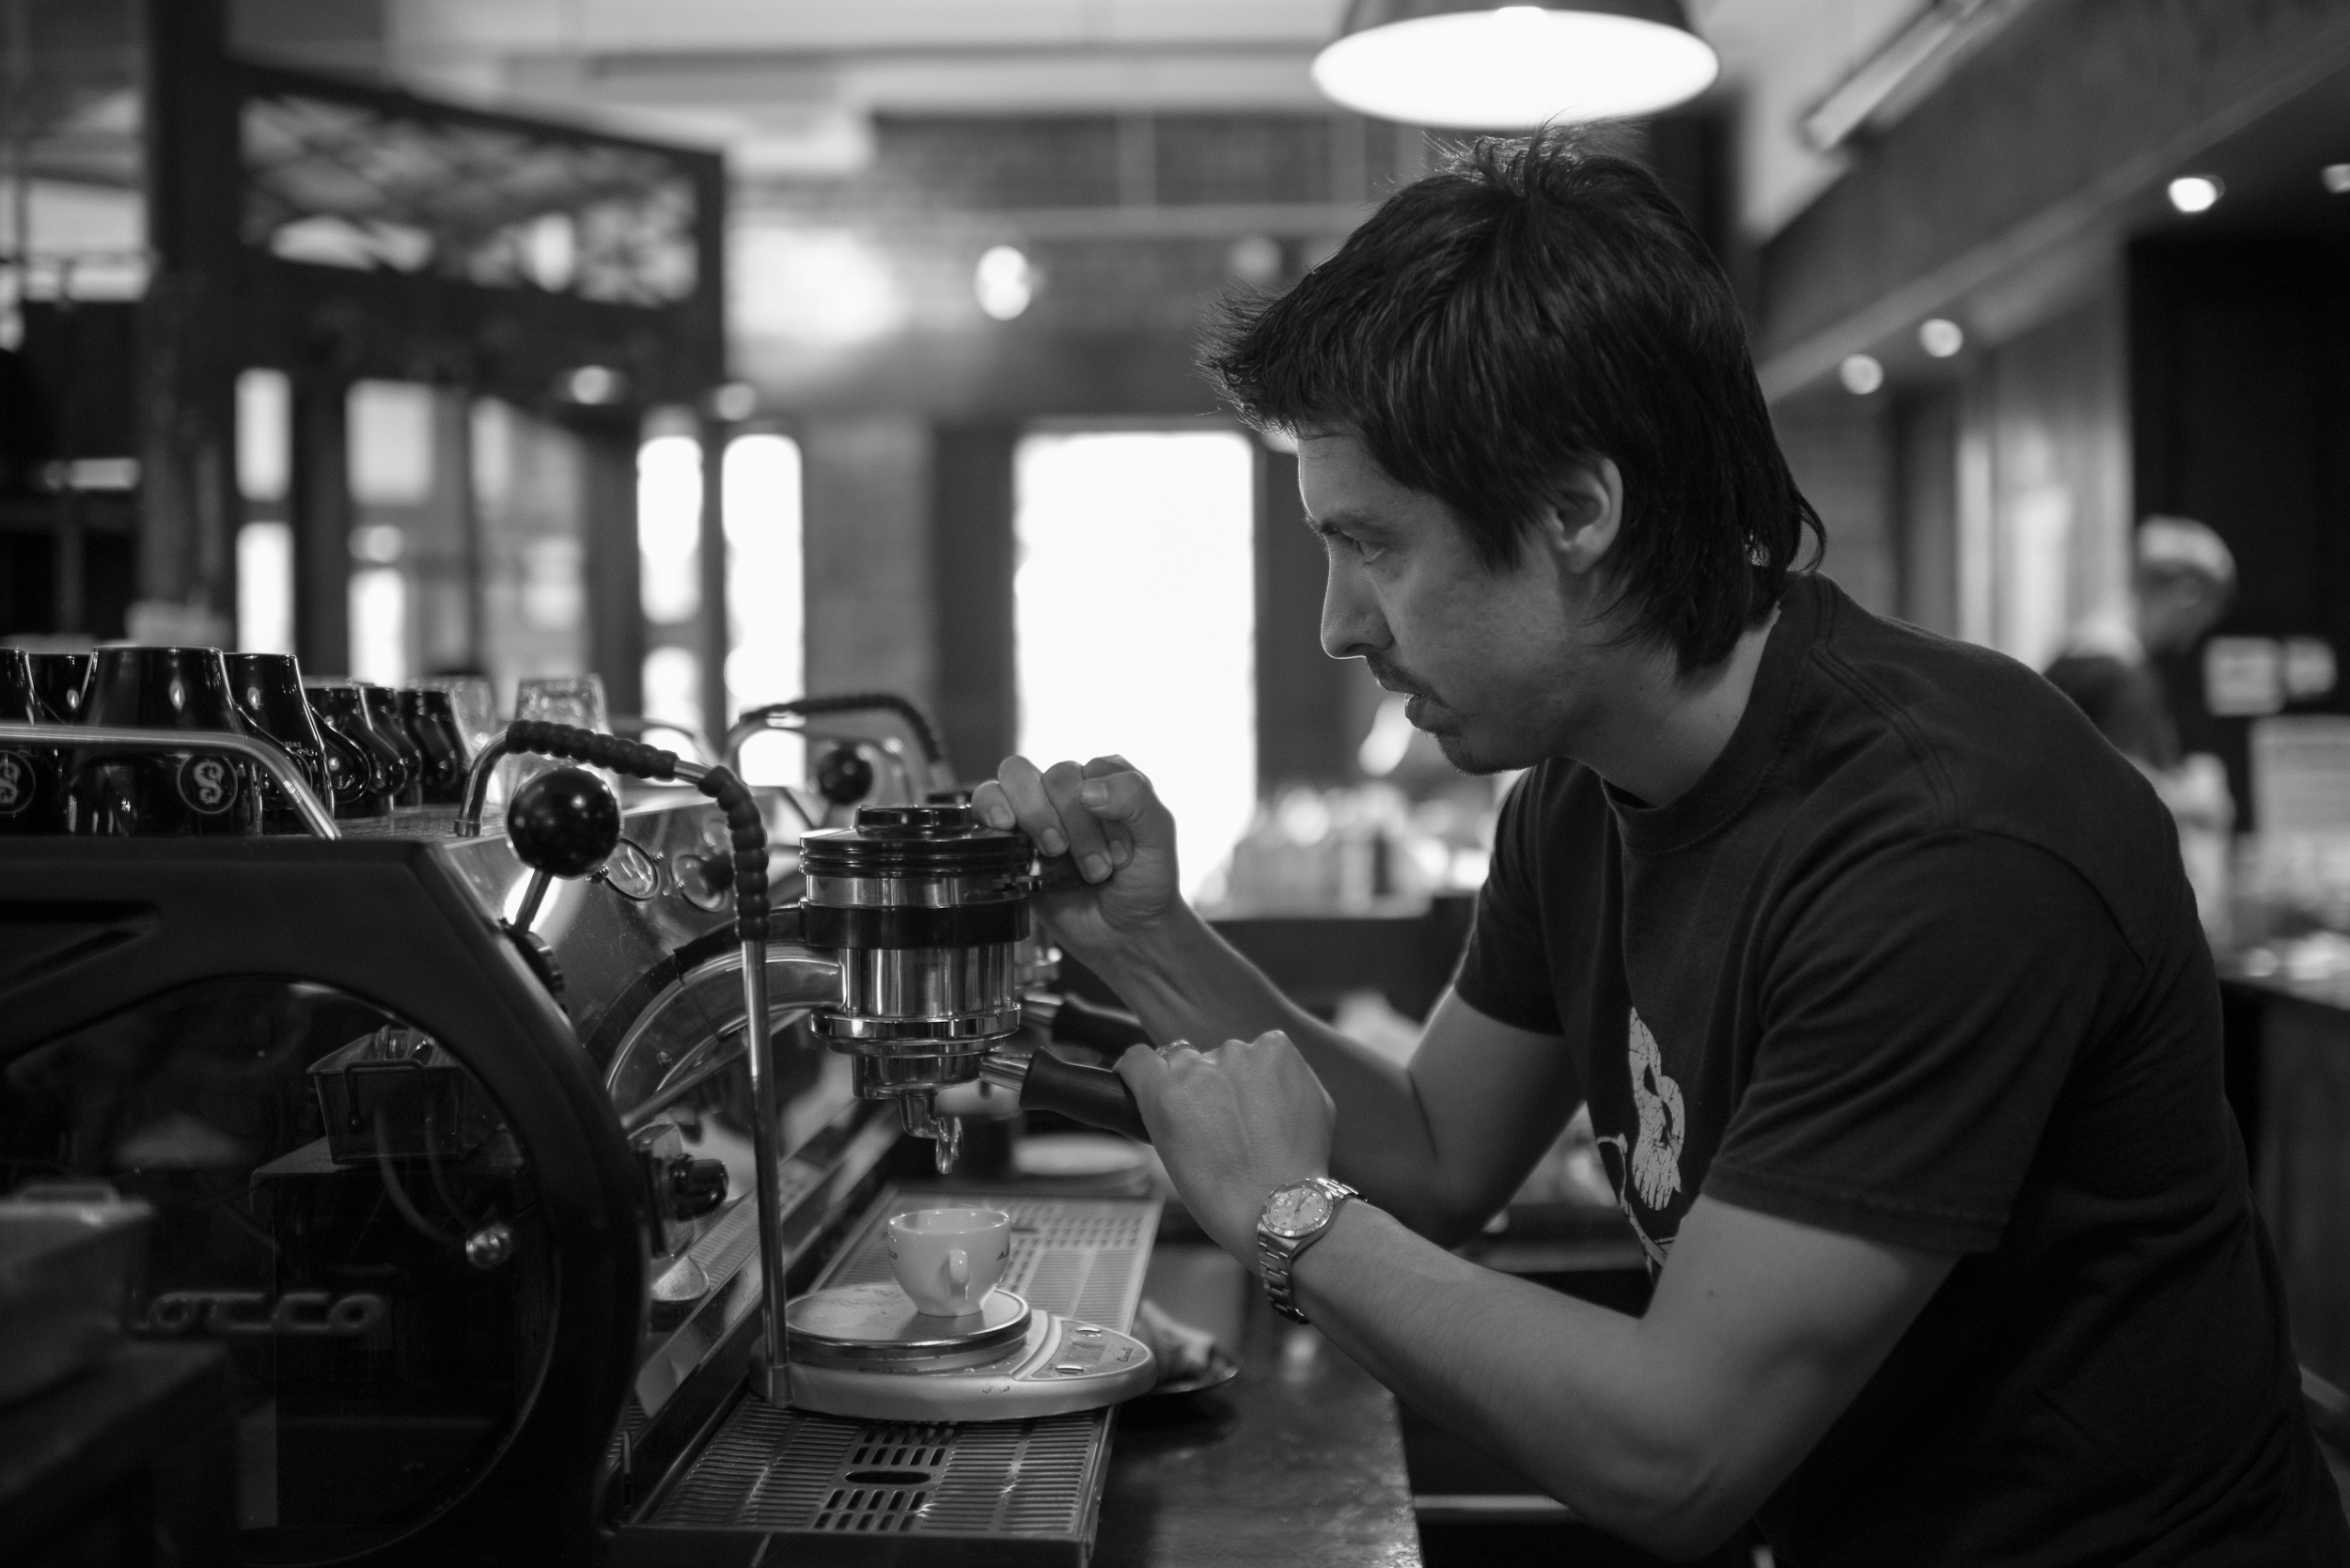 Co-owner Rich Nieto on the Strada EP